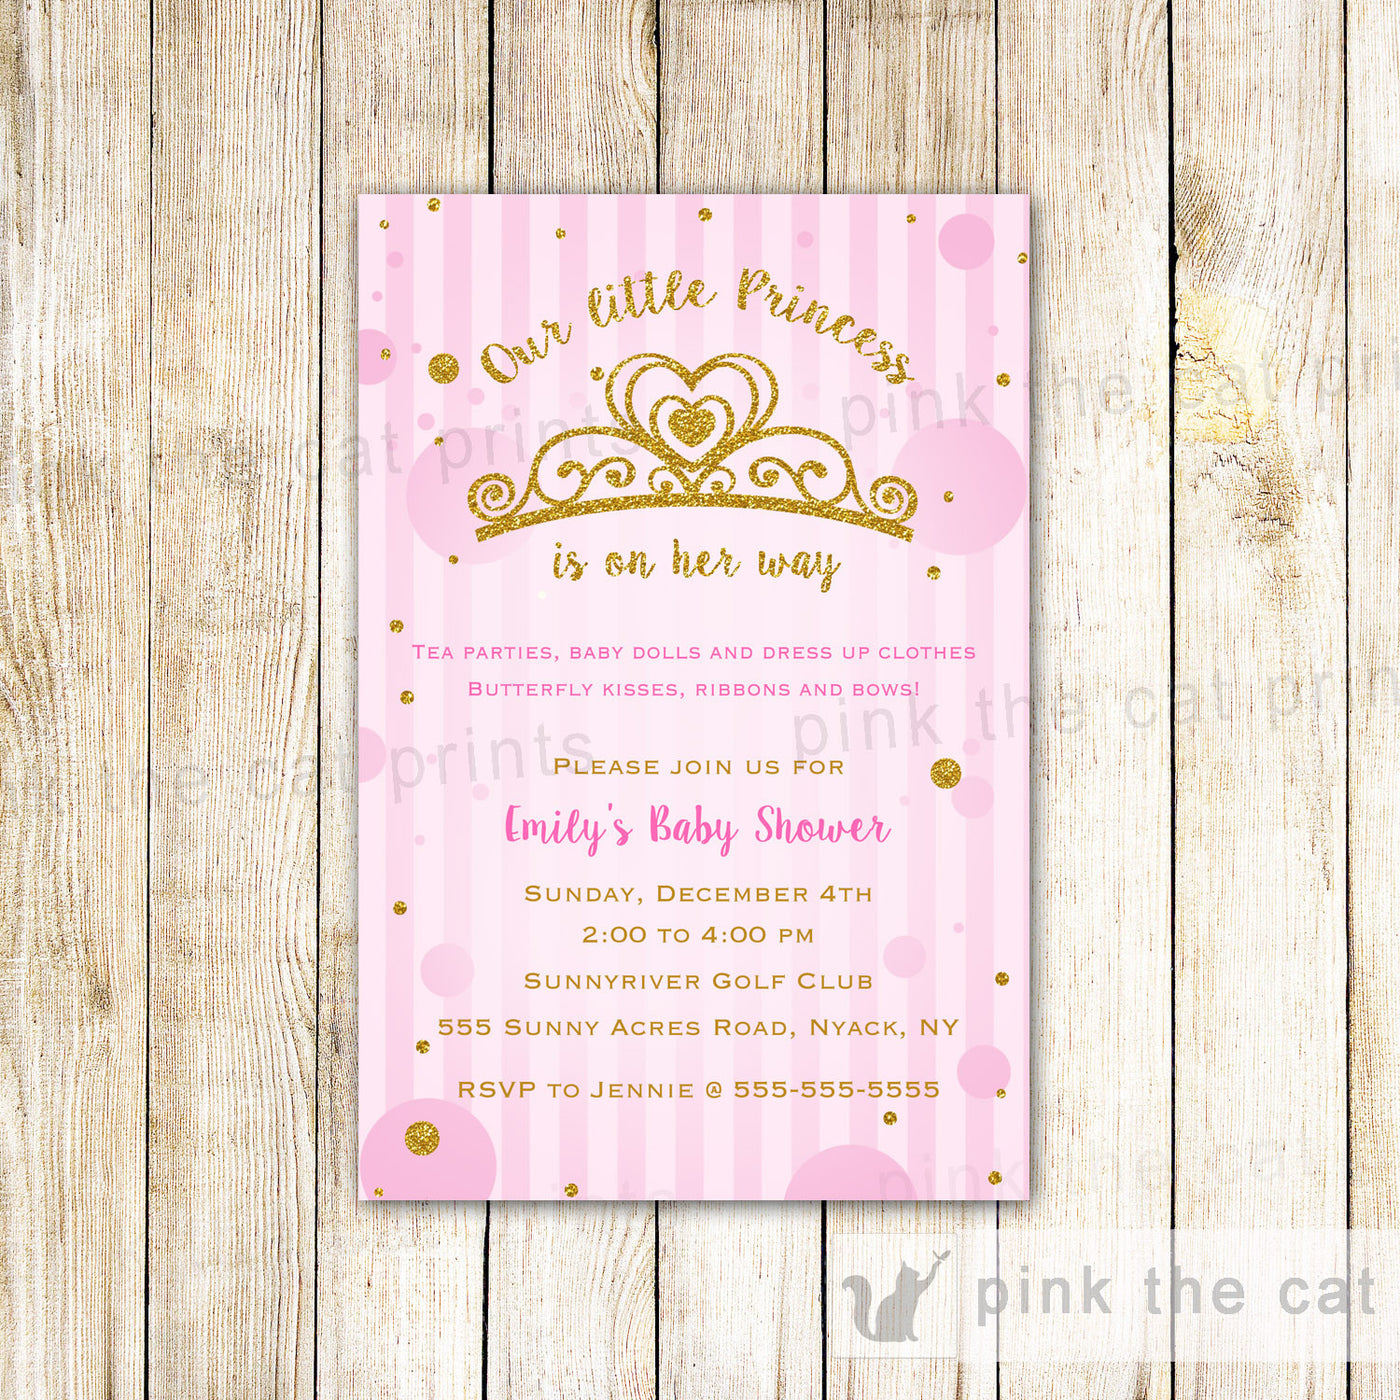 28fd32cee Cupcake Invitation Girl Birthday Party Purple Teal Baby Shower – Pink The  Cat